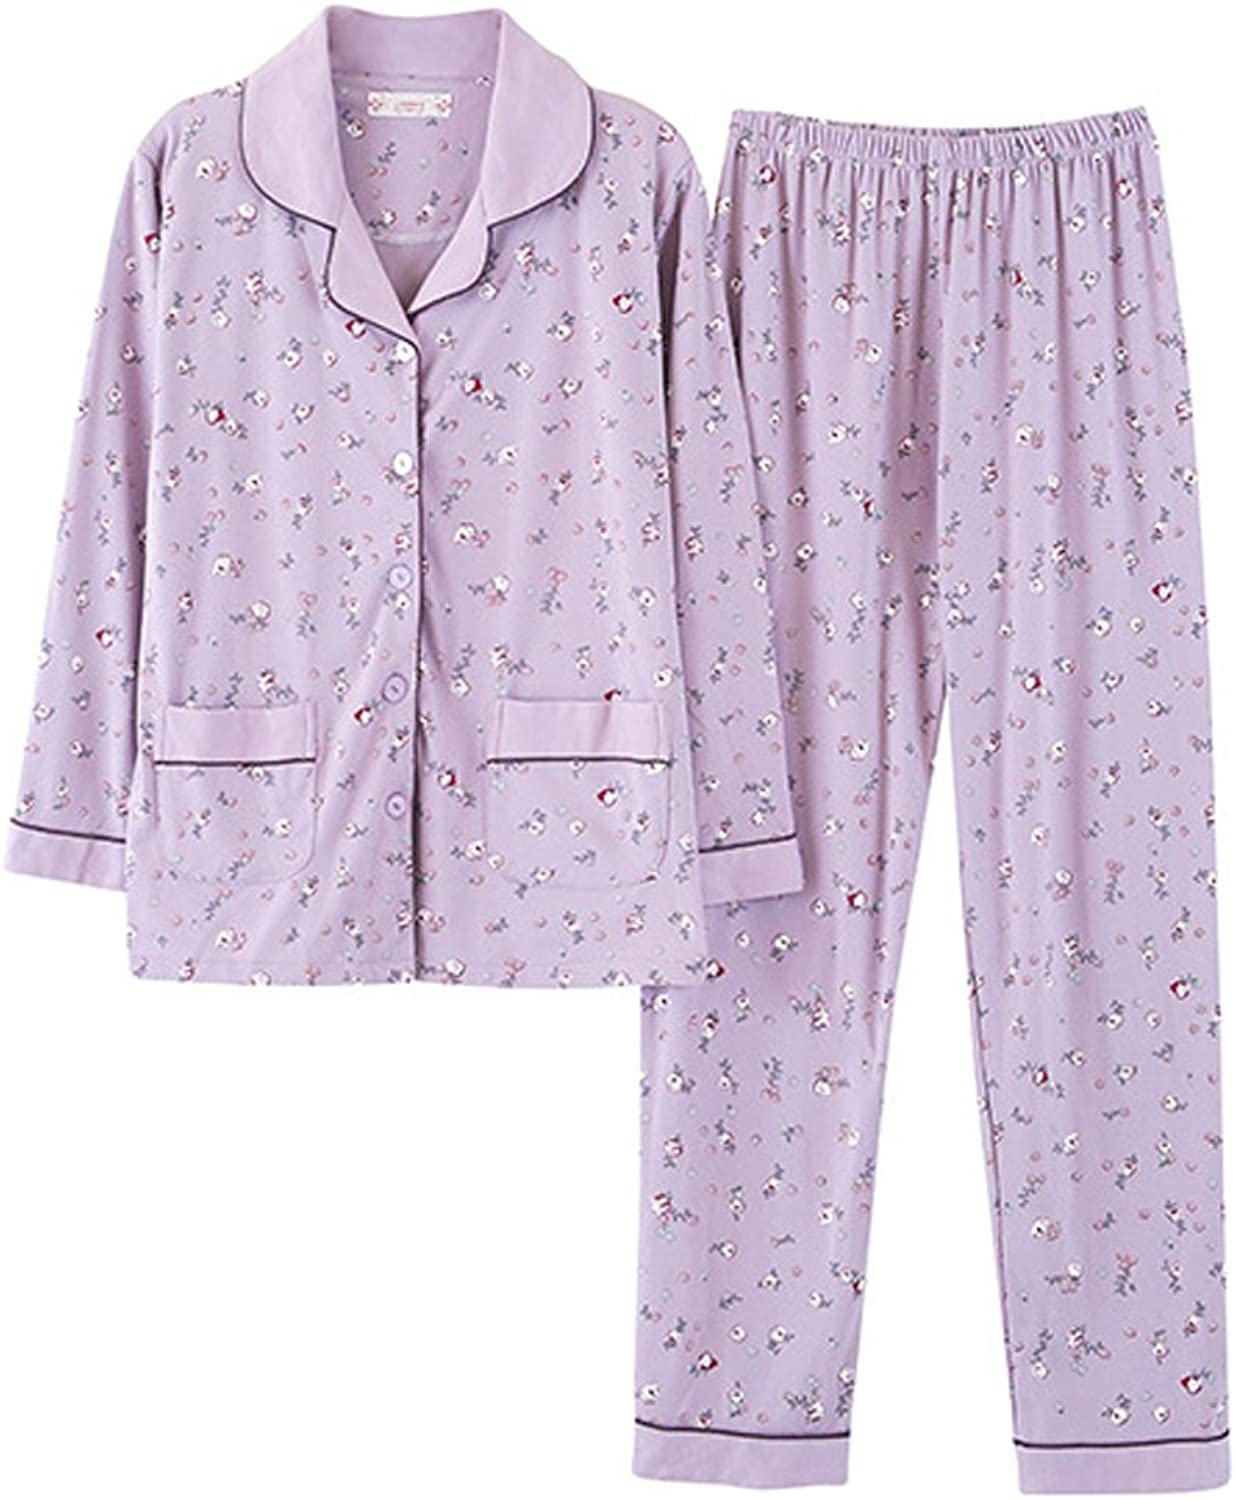 VENTELAN Women's Notch Collar Sleepwear Long Sleeve Pajamas Cotton Pajama Set